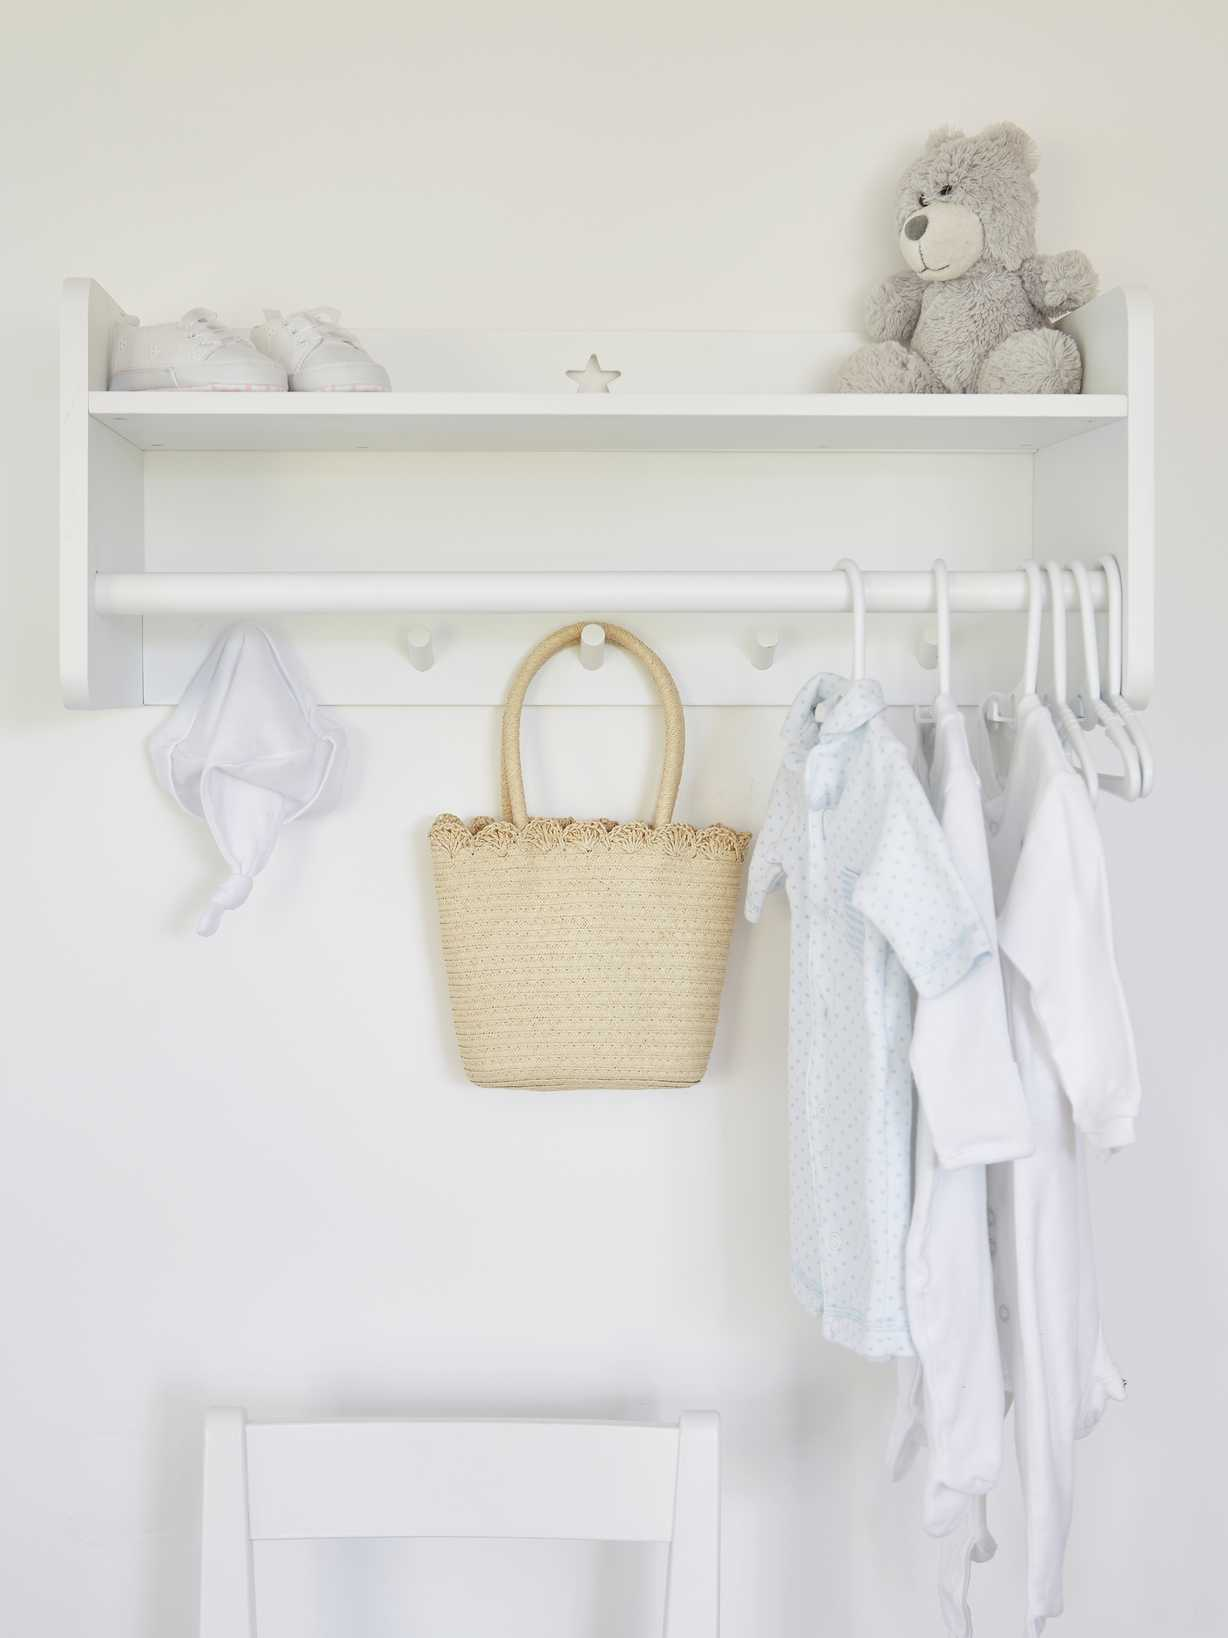 Nordic House Star Clothes Rack with Shelf